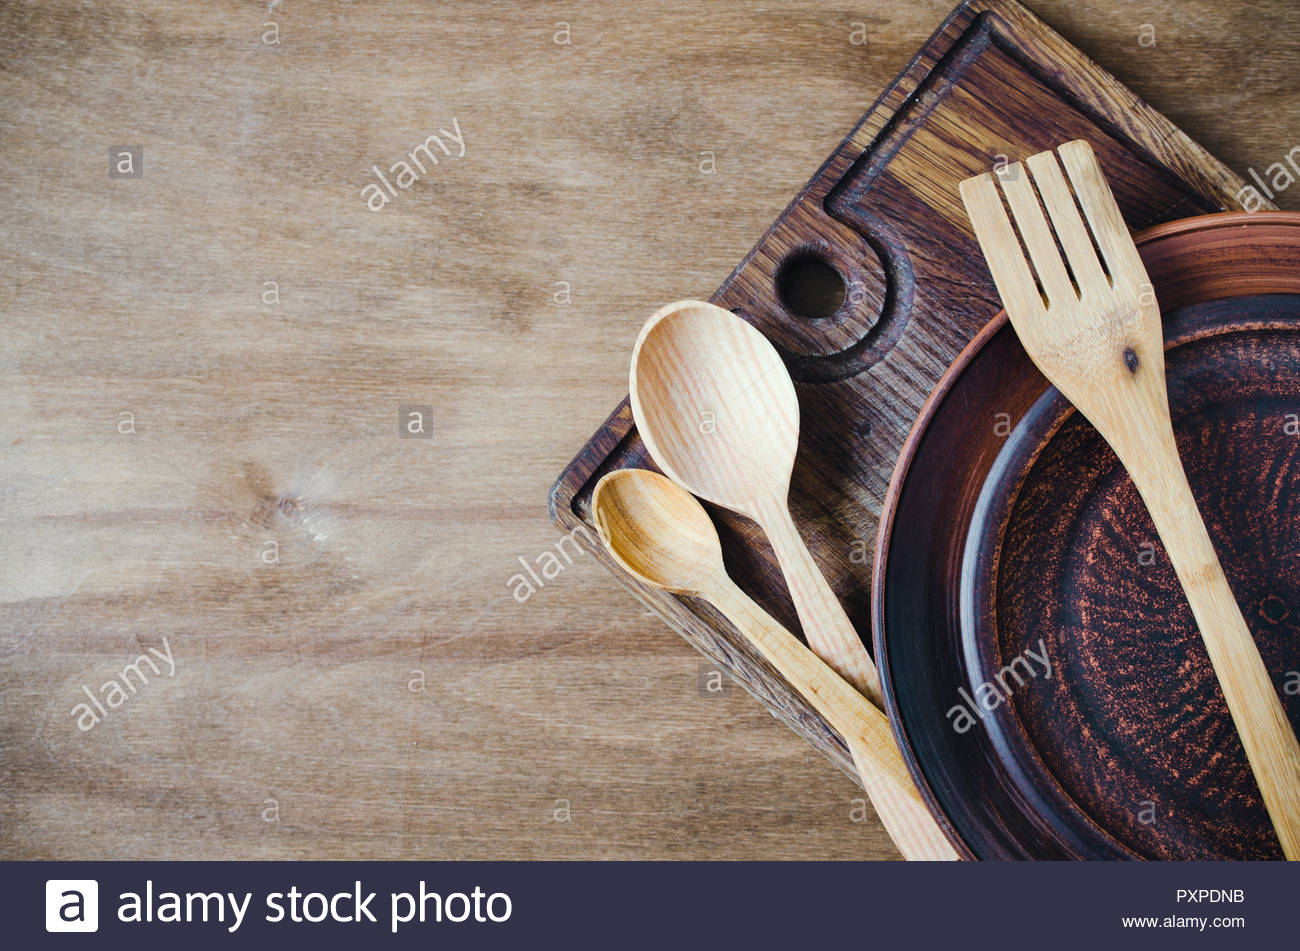 Rustic Kitchen Utensils the Ceramic Plates and Wooden Cutlery on 1300x951